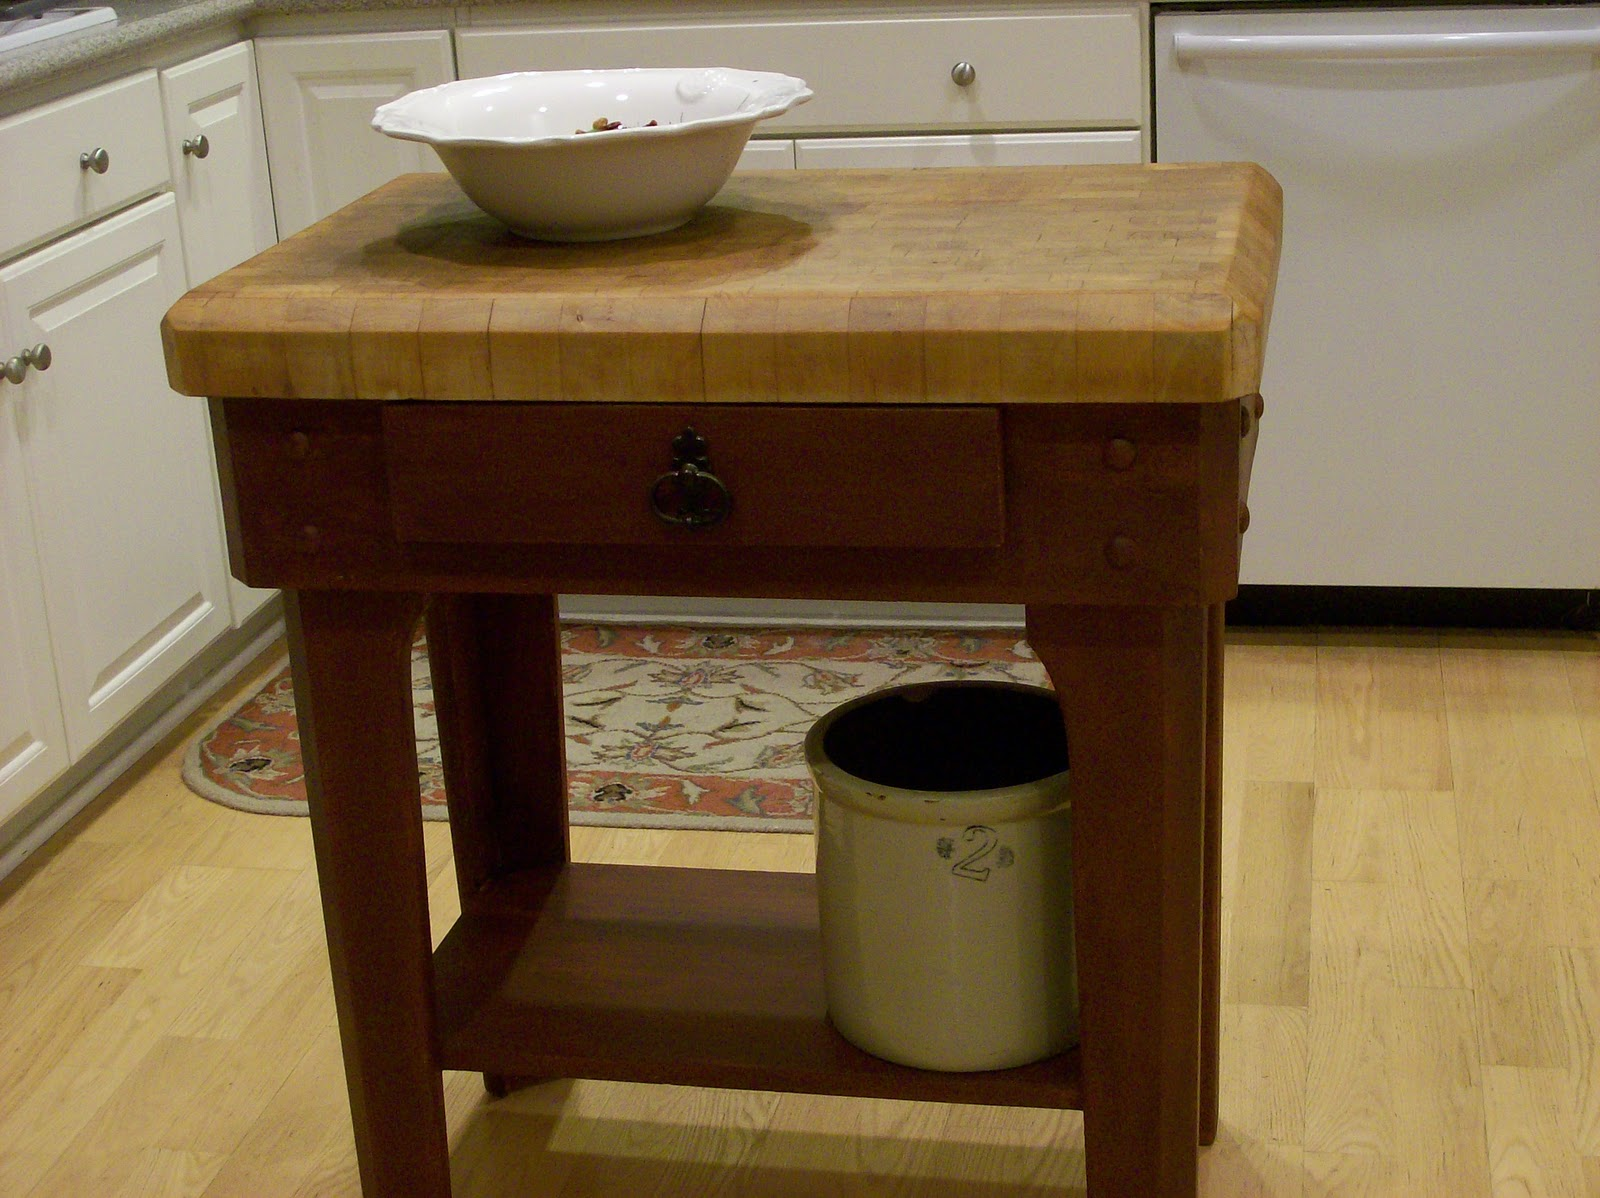 Wild Oak Designs: The butcher block kitchen island.it's for keeps